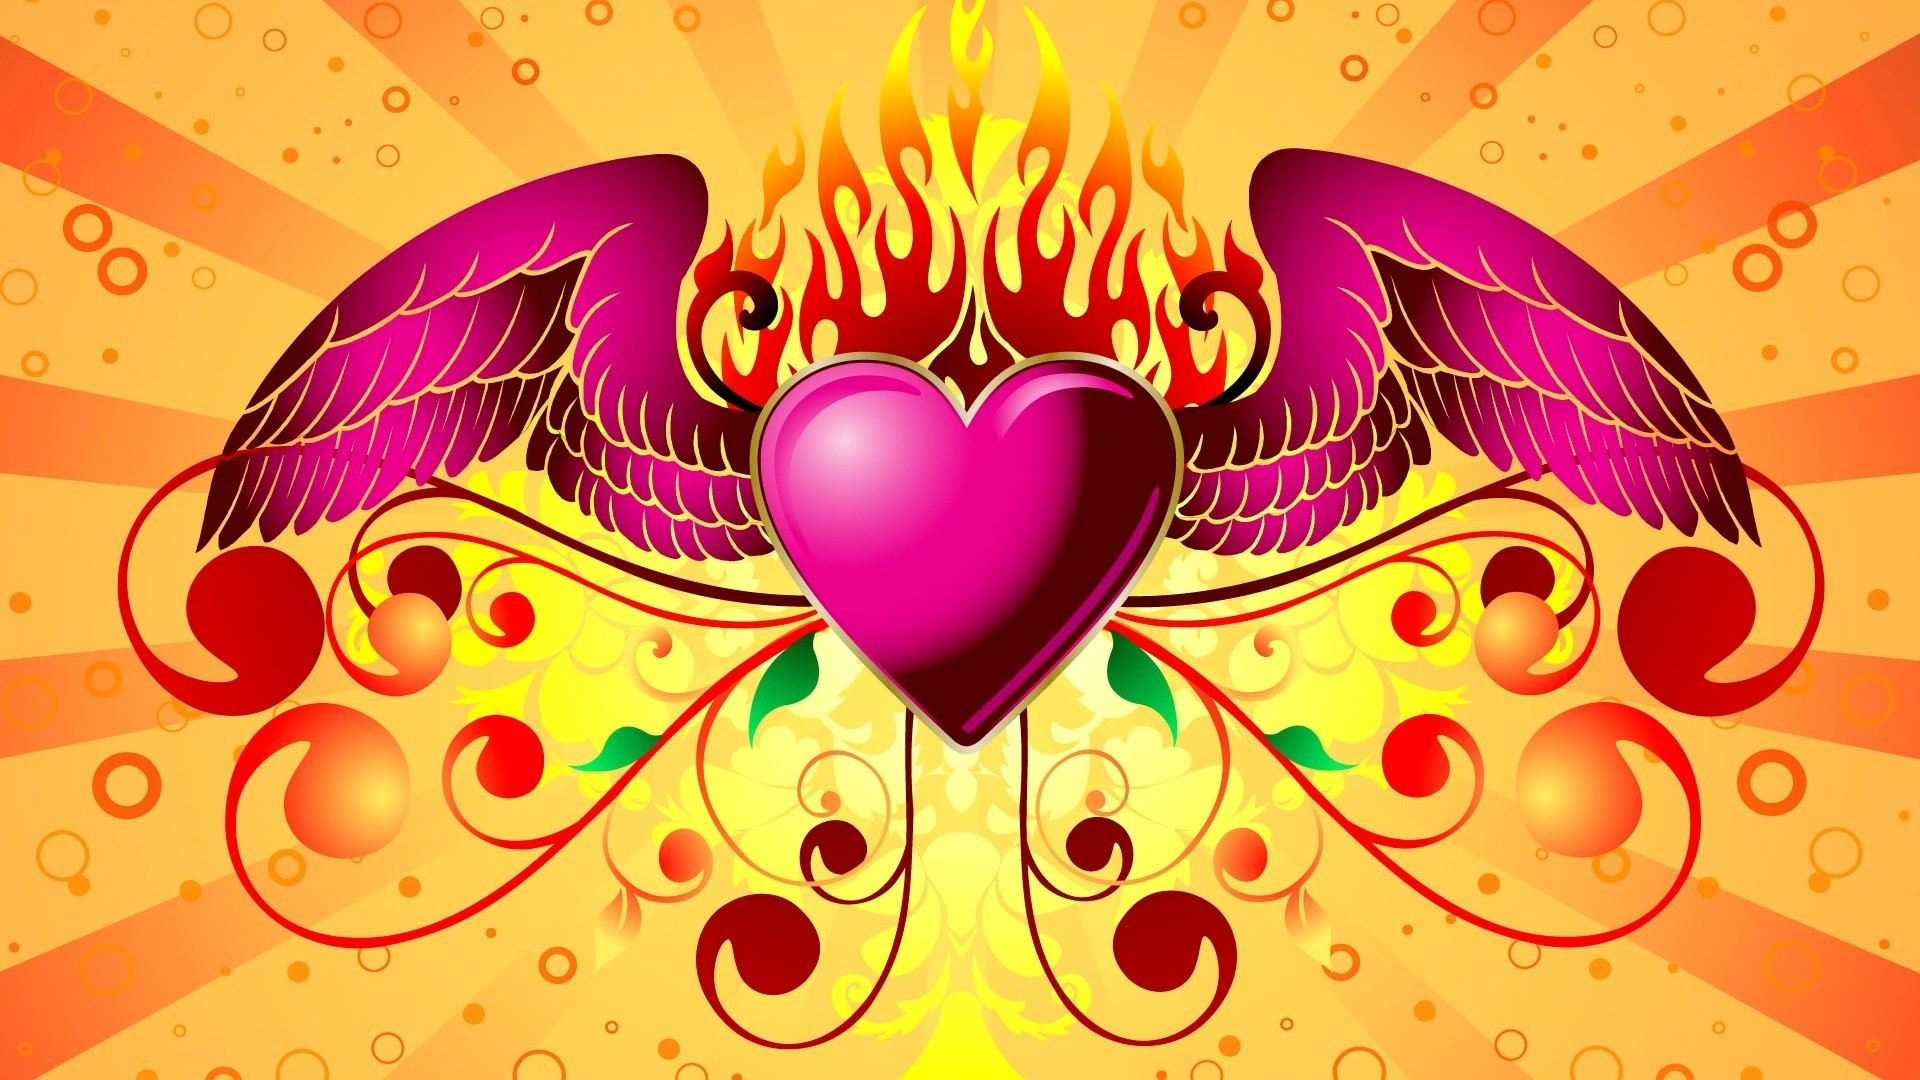 1920x1080 Pink Heart with Wings with Fire Design HD Images | HD Wallpapers .